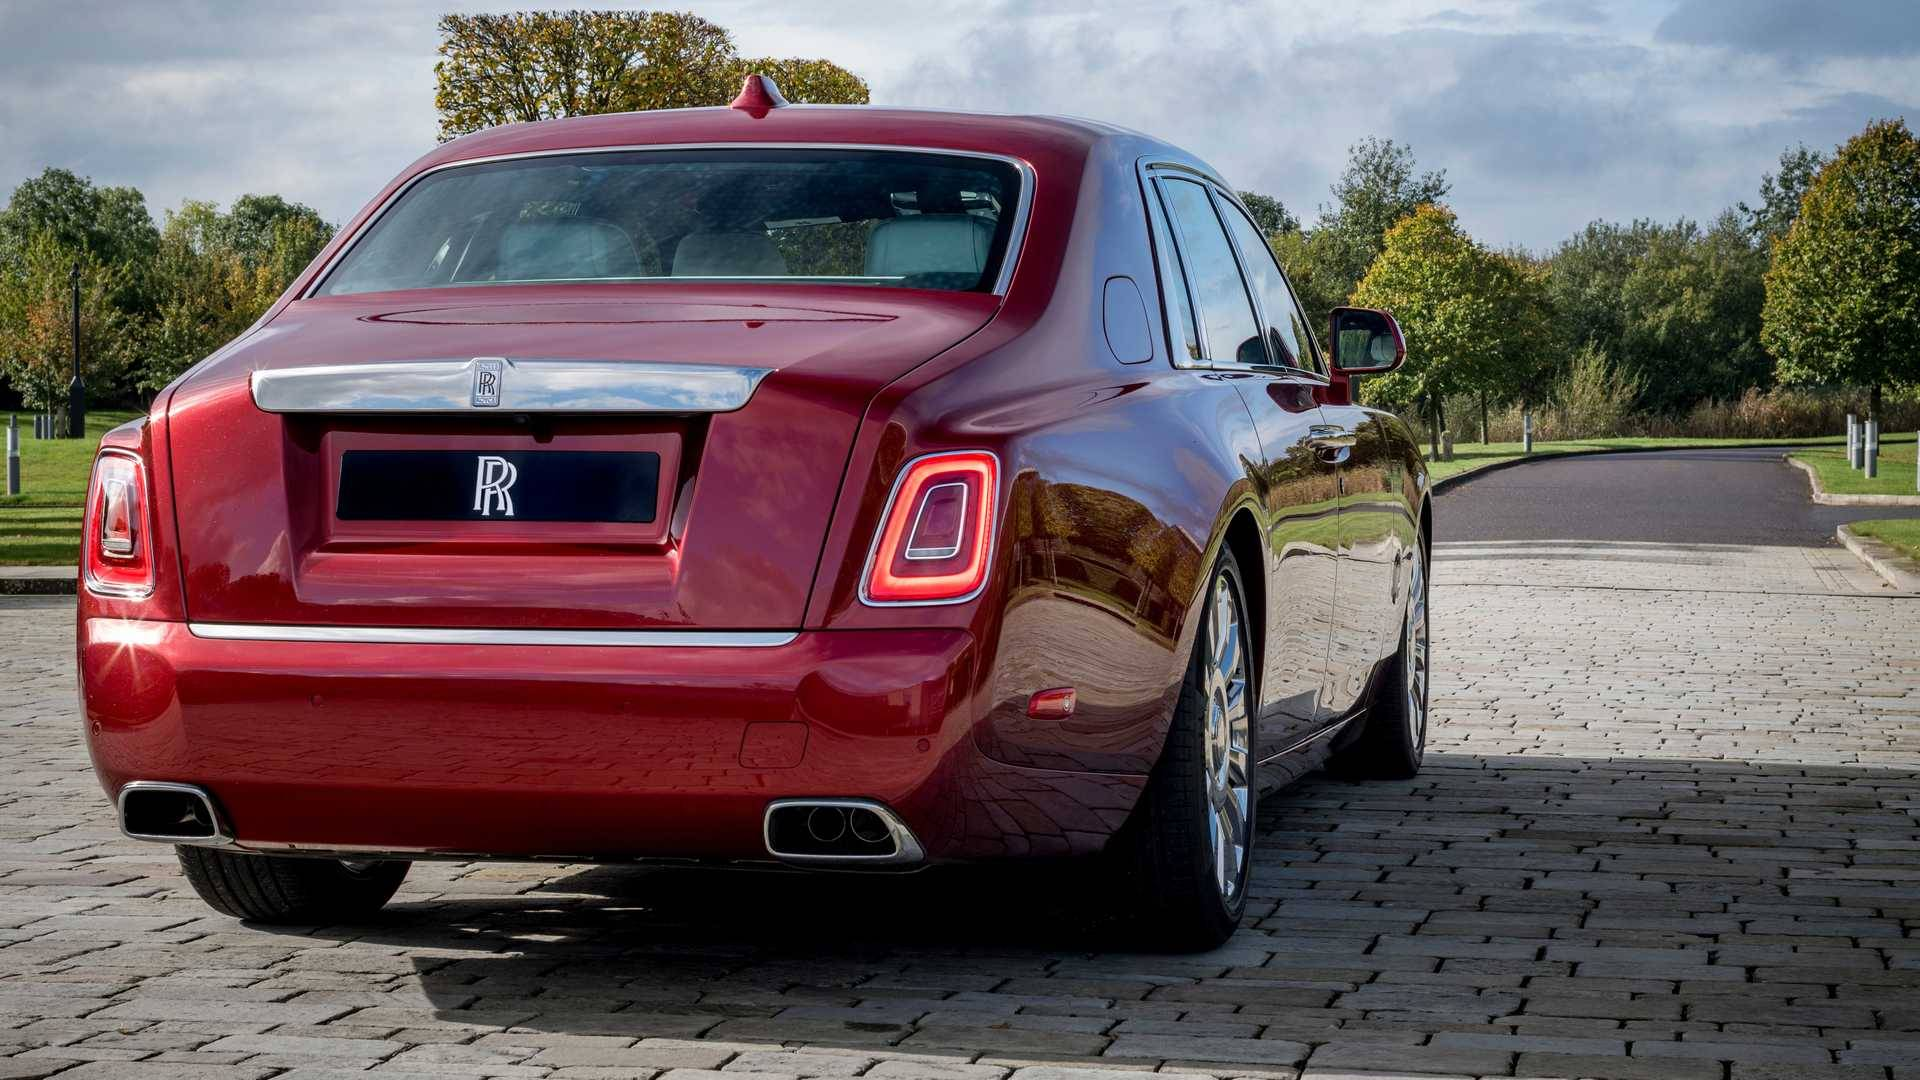 Rolls-Royce Phantom Red